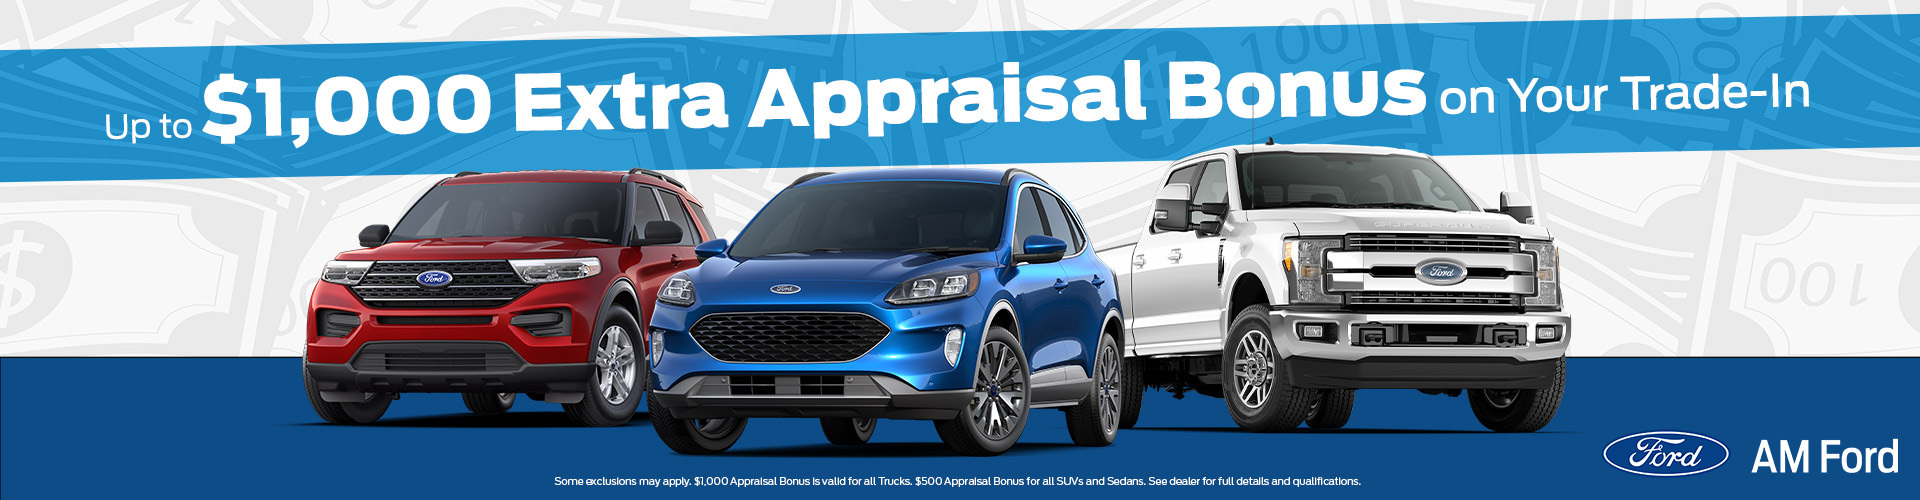 Get Up To $1000 Extra Appraisal Bonus On Your Trade-In At AM Ford in Trail, BC